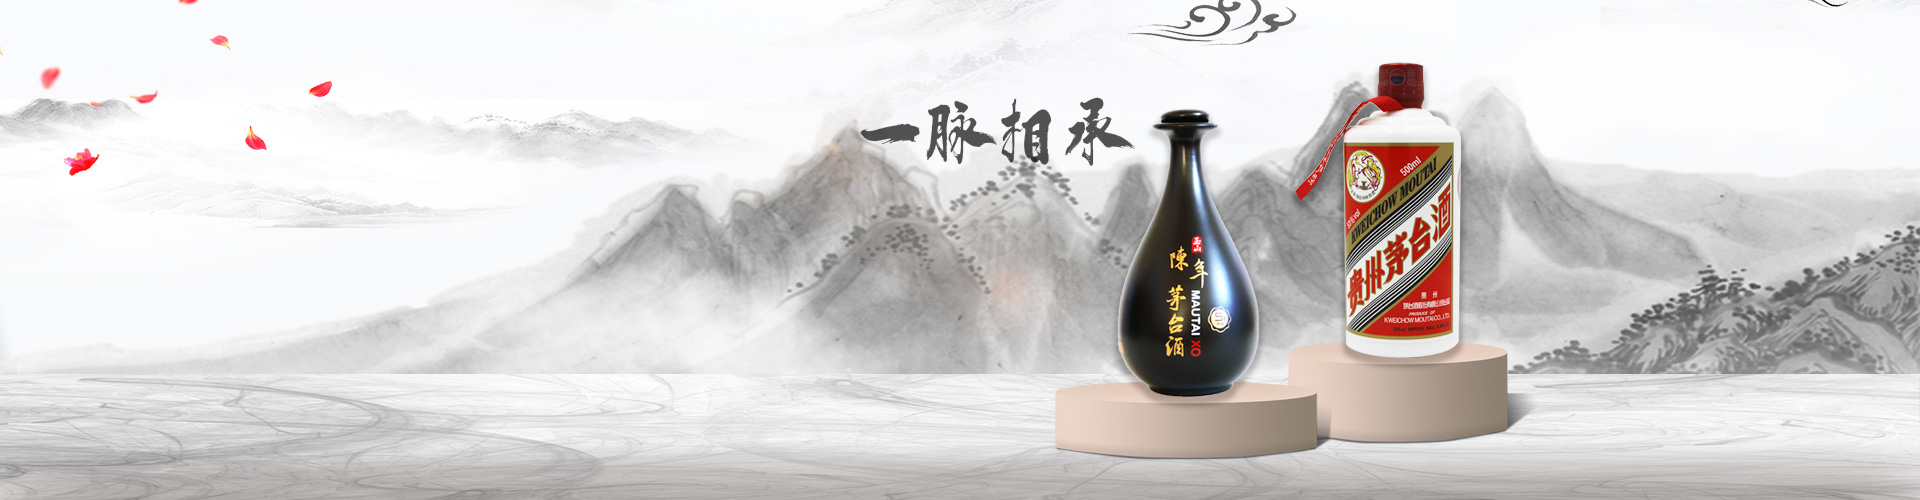 Moutai Liquor